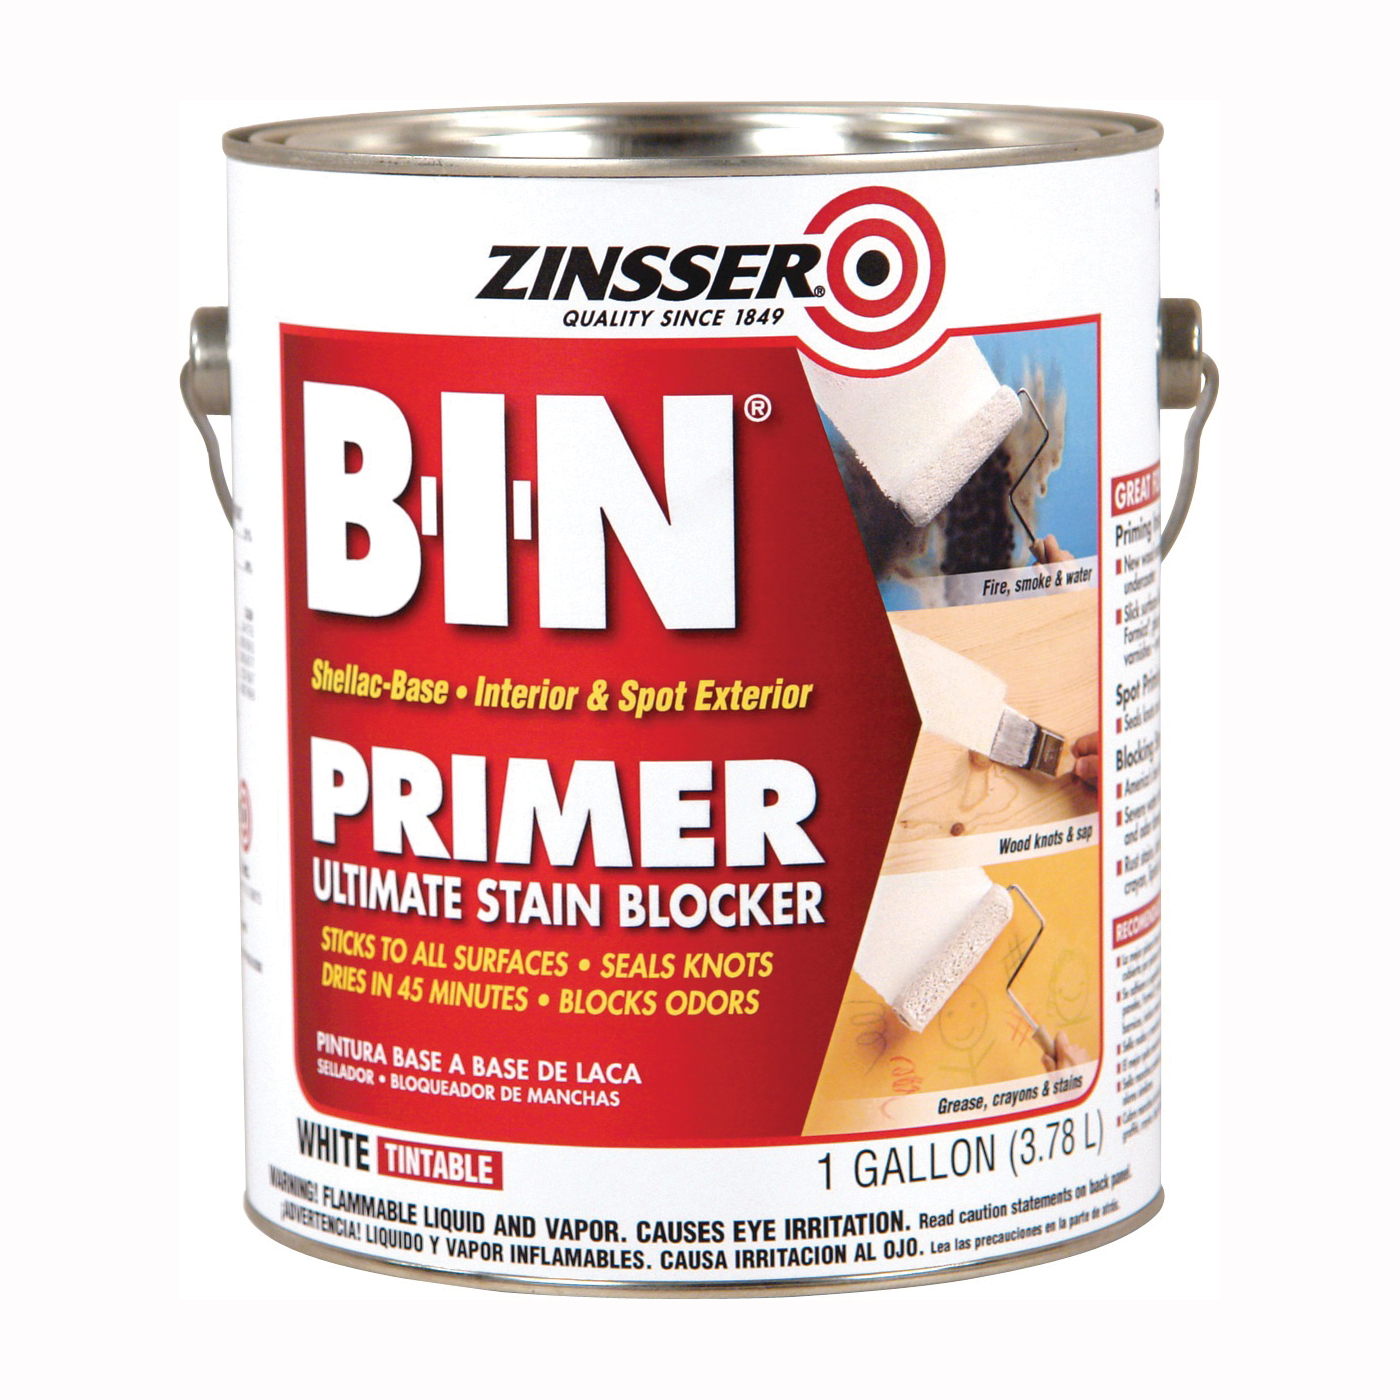 Picture of ZINSSER B-I-N 00901 Shellac-Base Primer, White, 1 gal